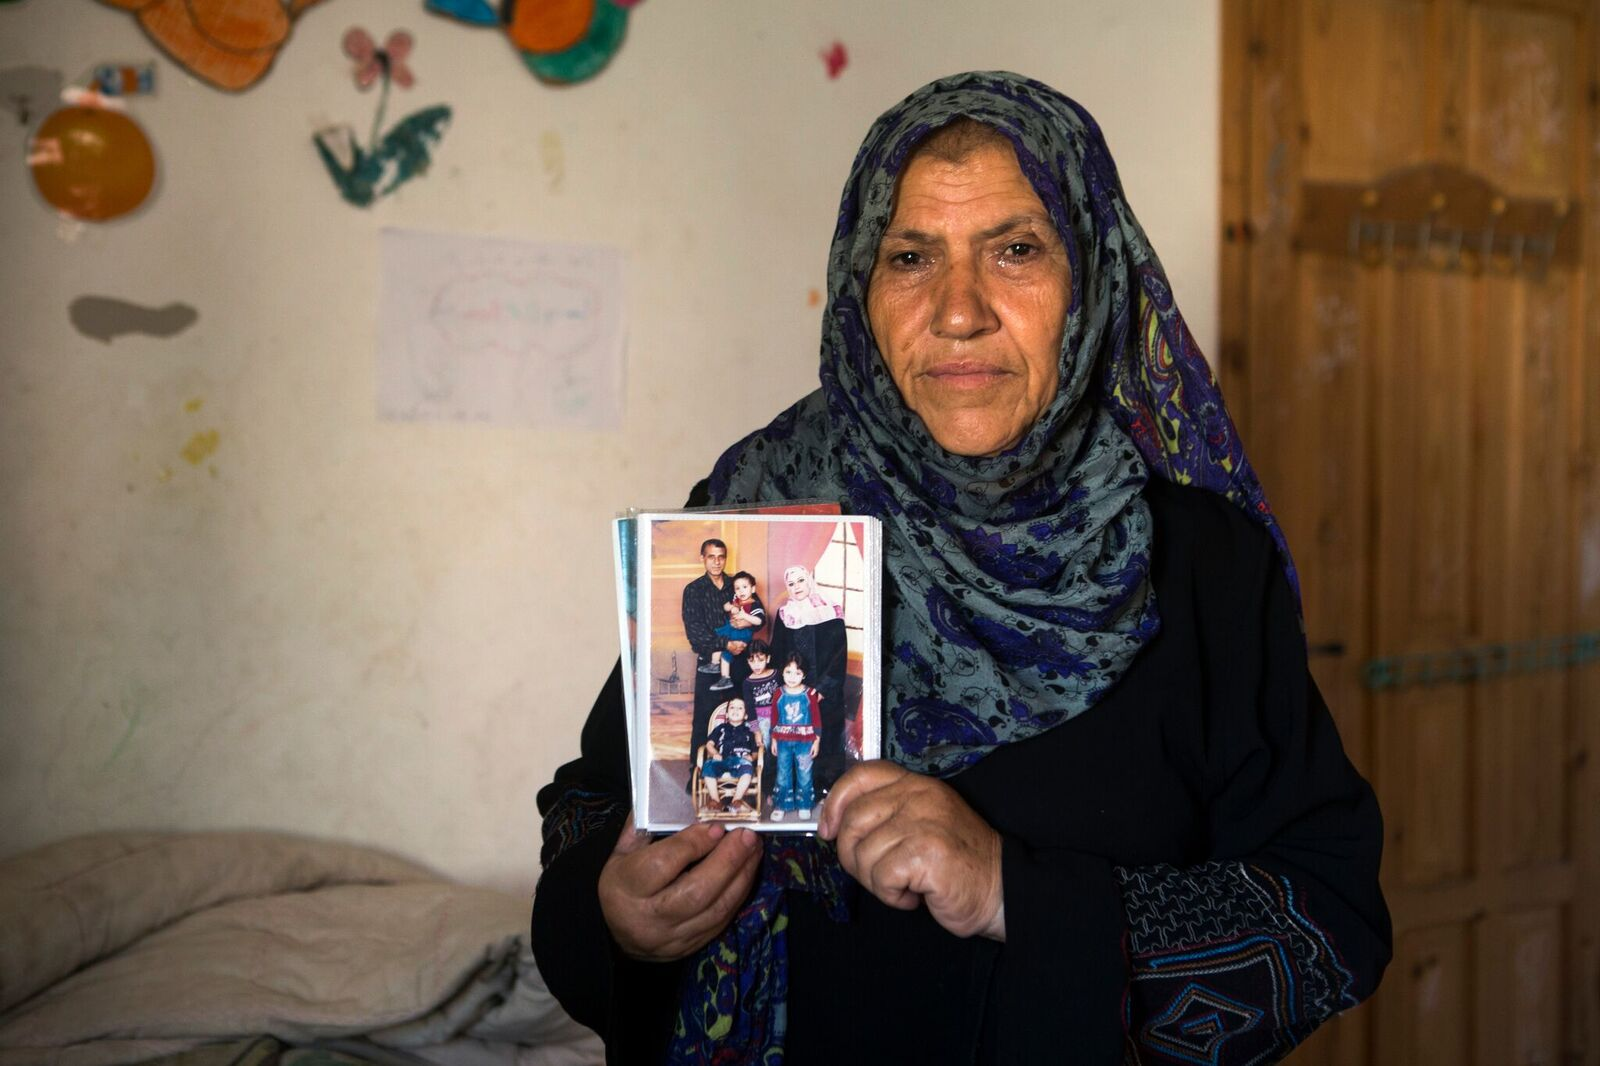 Khadija, Ibrahim's sister, holds photo of her brother and his family.